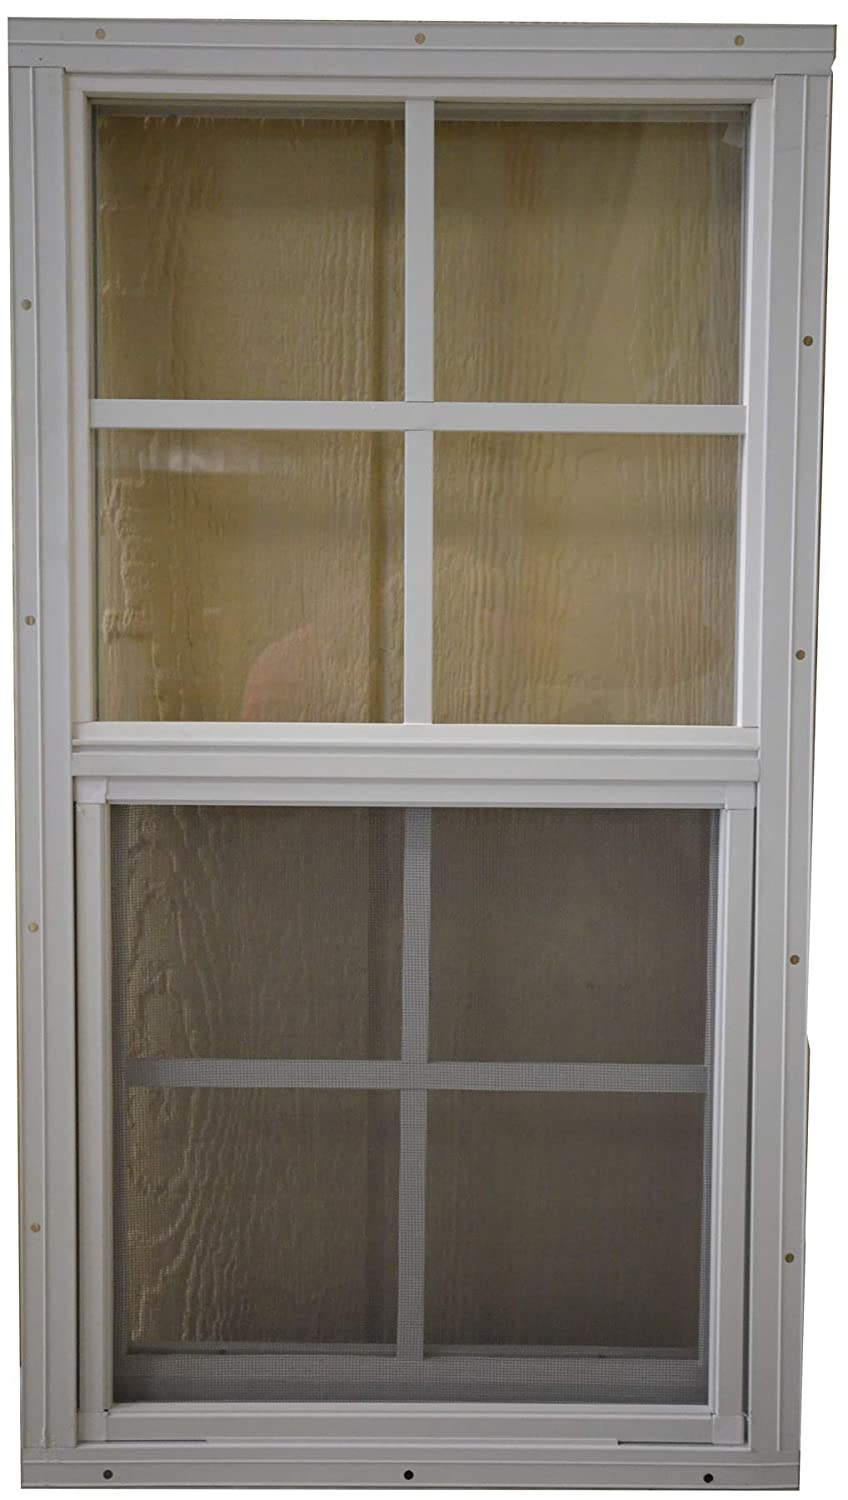 SHED PLAYHOUSE WINDOW-14X27-WHITE-J-LAP OUTDOOR PLAY AND STORAGE